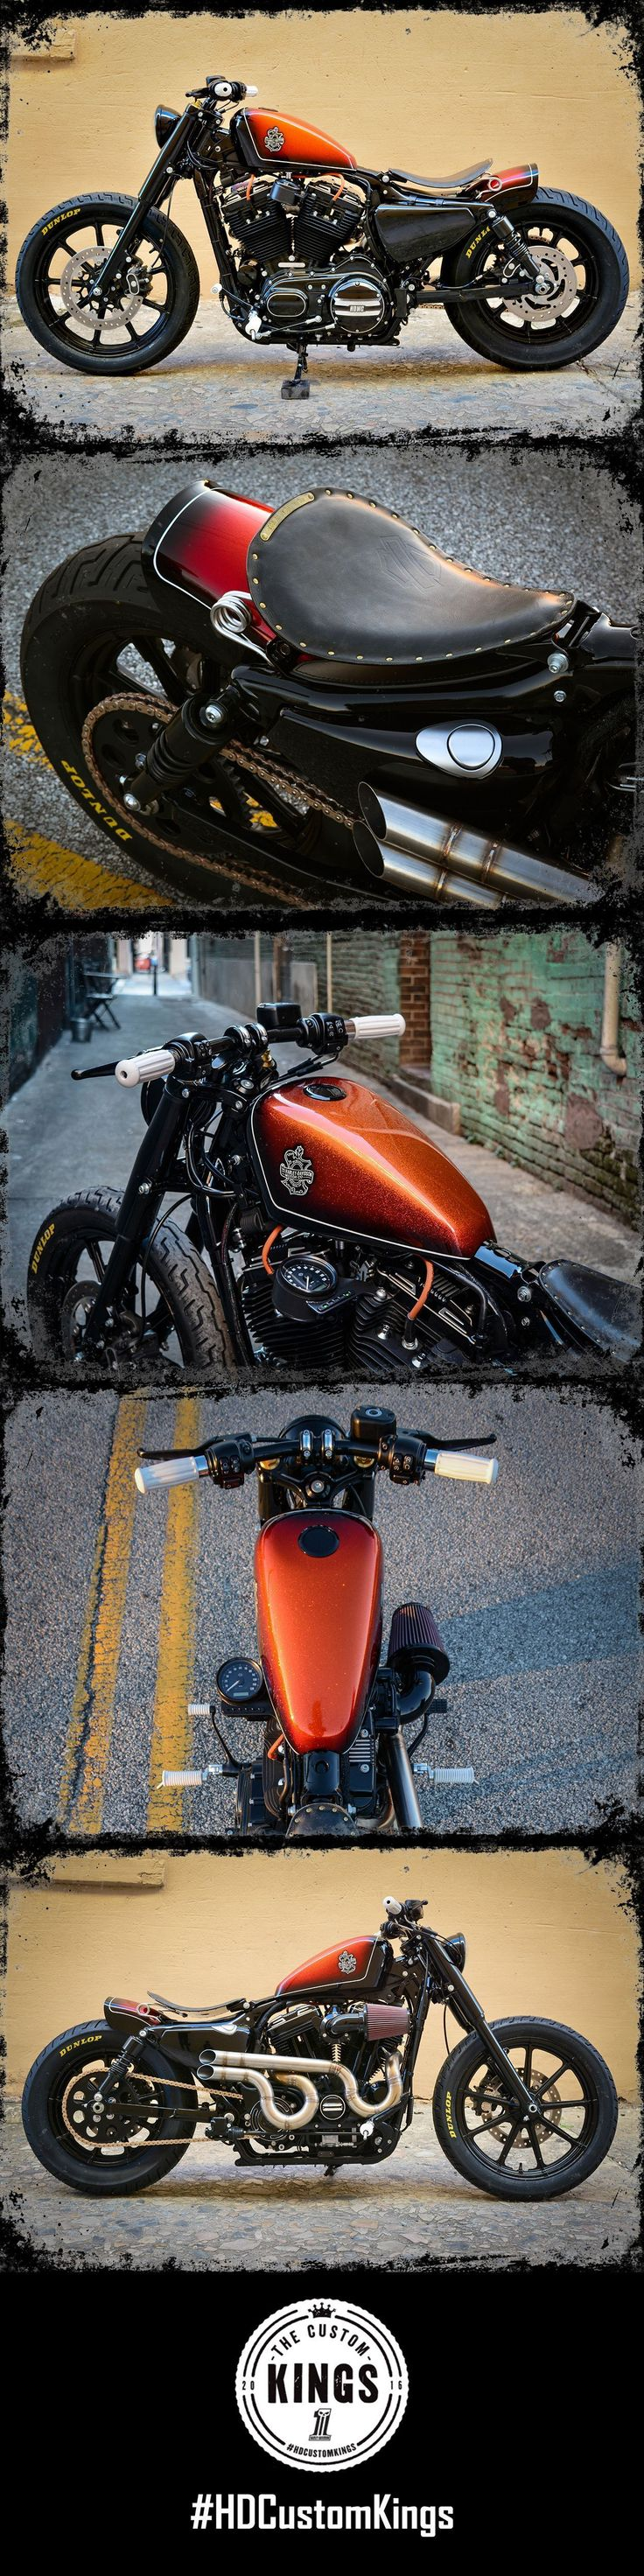 Macon H-D amplified the aggressive lines of the 2016 Iron 883 by chopping the frame, adding a custom rear fender, lowering the bike, and blacking it out with H-D parts & accessories. Vintage white controls and drag bars add a touch of nostalgia.   Harley-Davidson #HDCustomKings #harleydavidsoncustommotorcyclesiron883